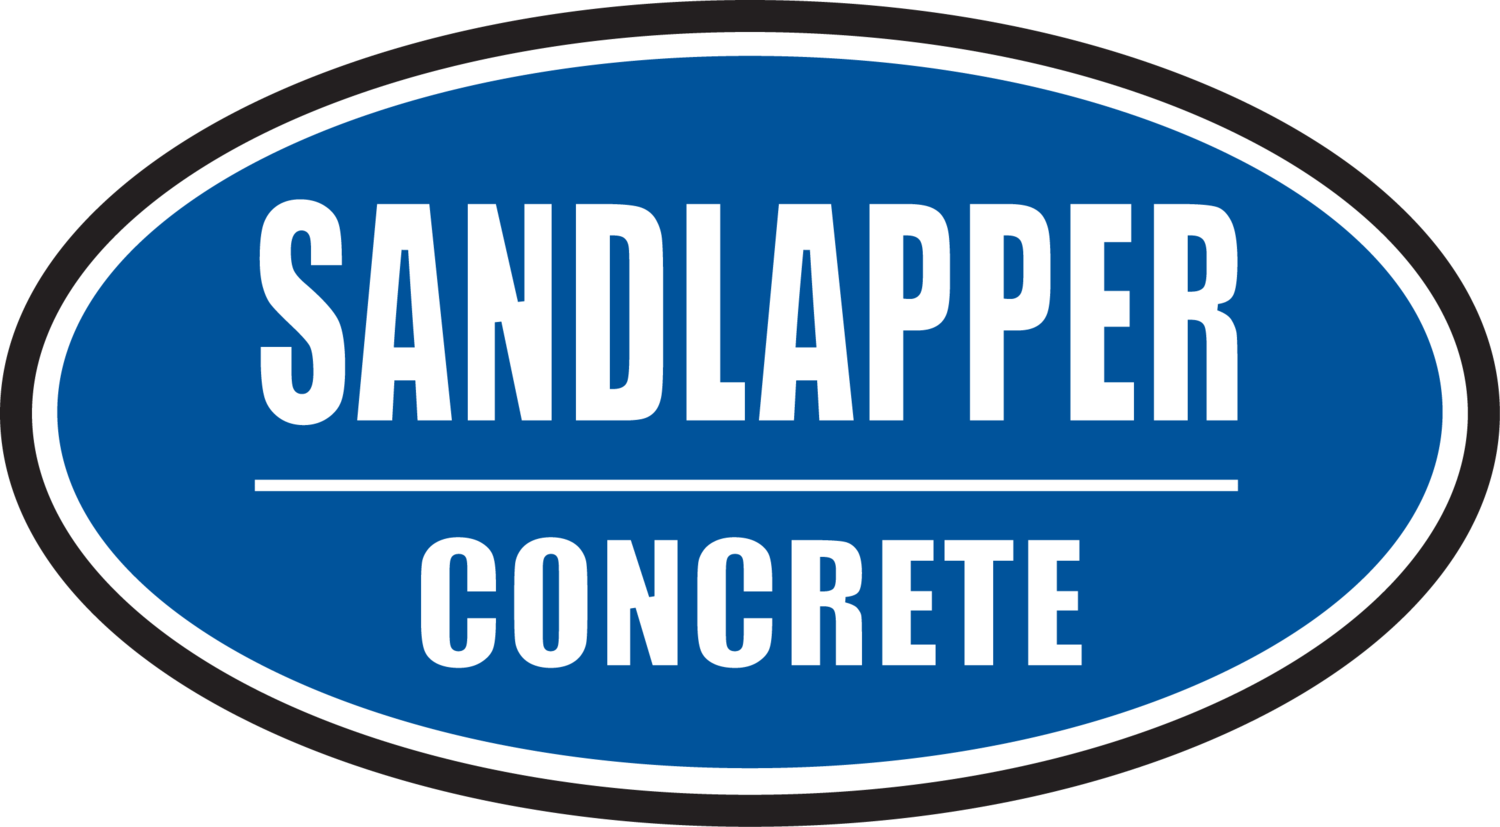 Sandlapper Concrete